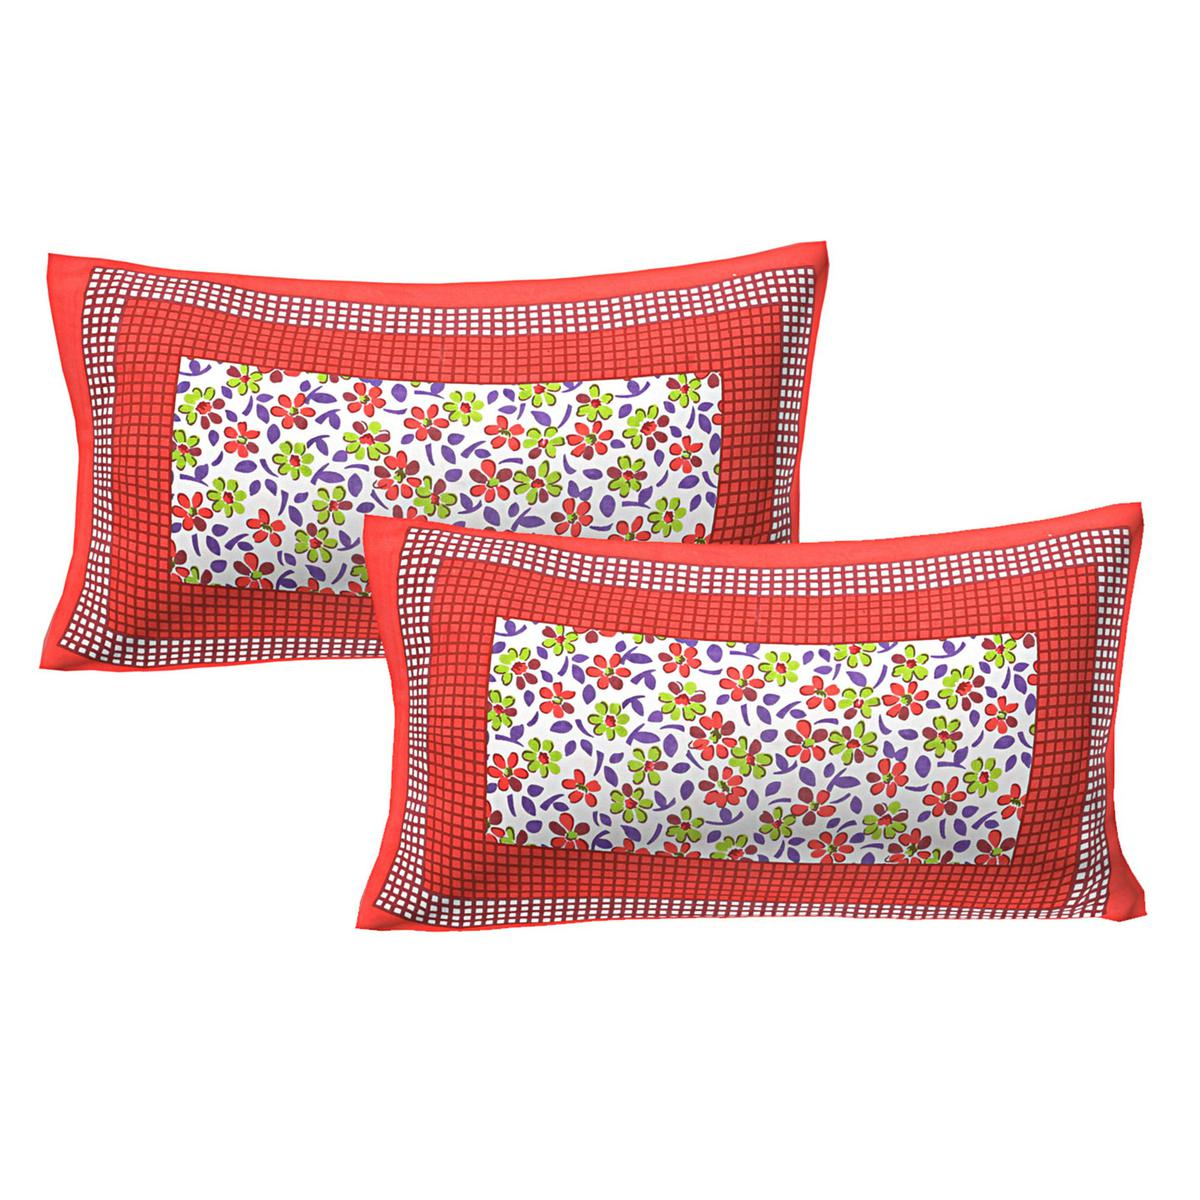 AJ Home - Red Colored 100% Cotton Printed Pillow Cover Set (2 Pieces)